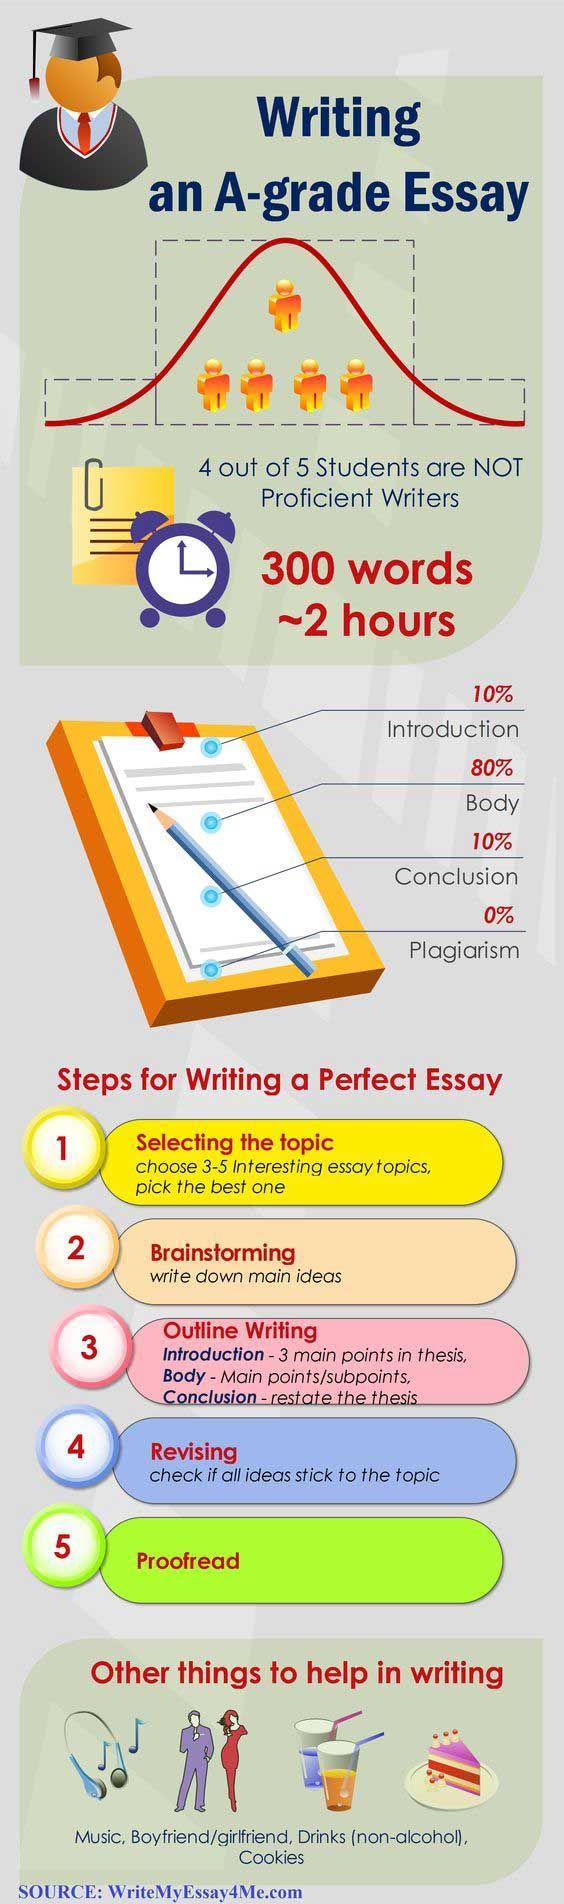 Writing a good college admissions essay revised 4th edition